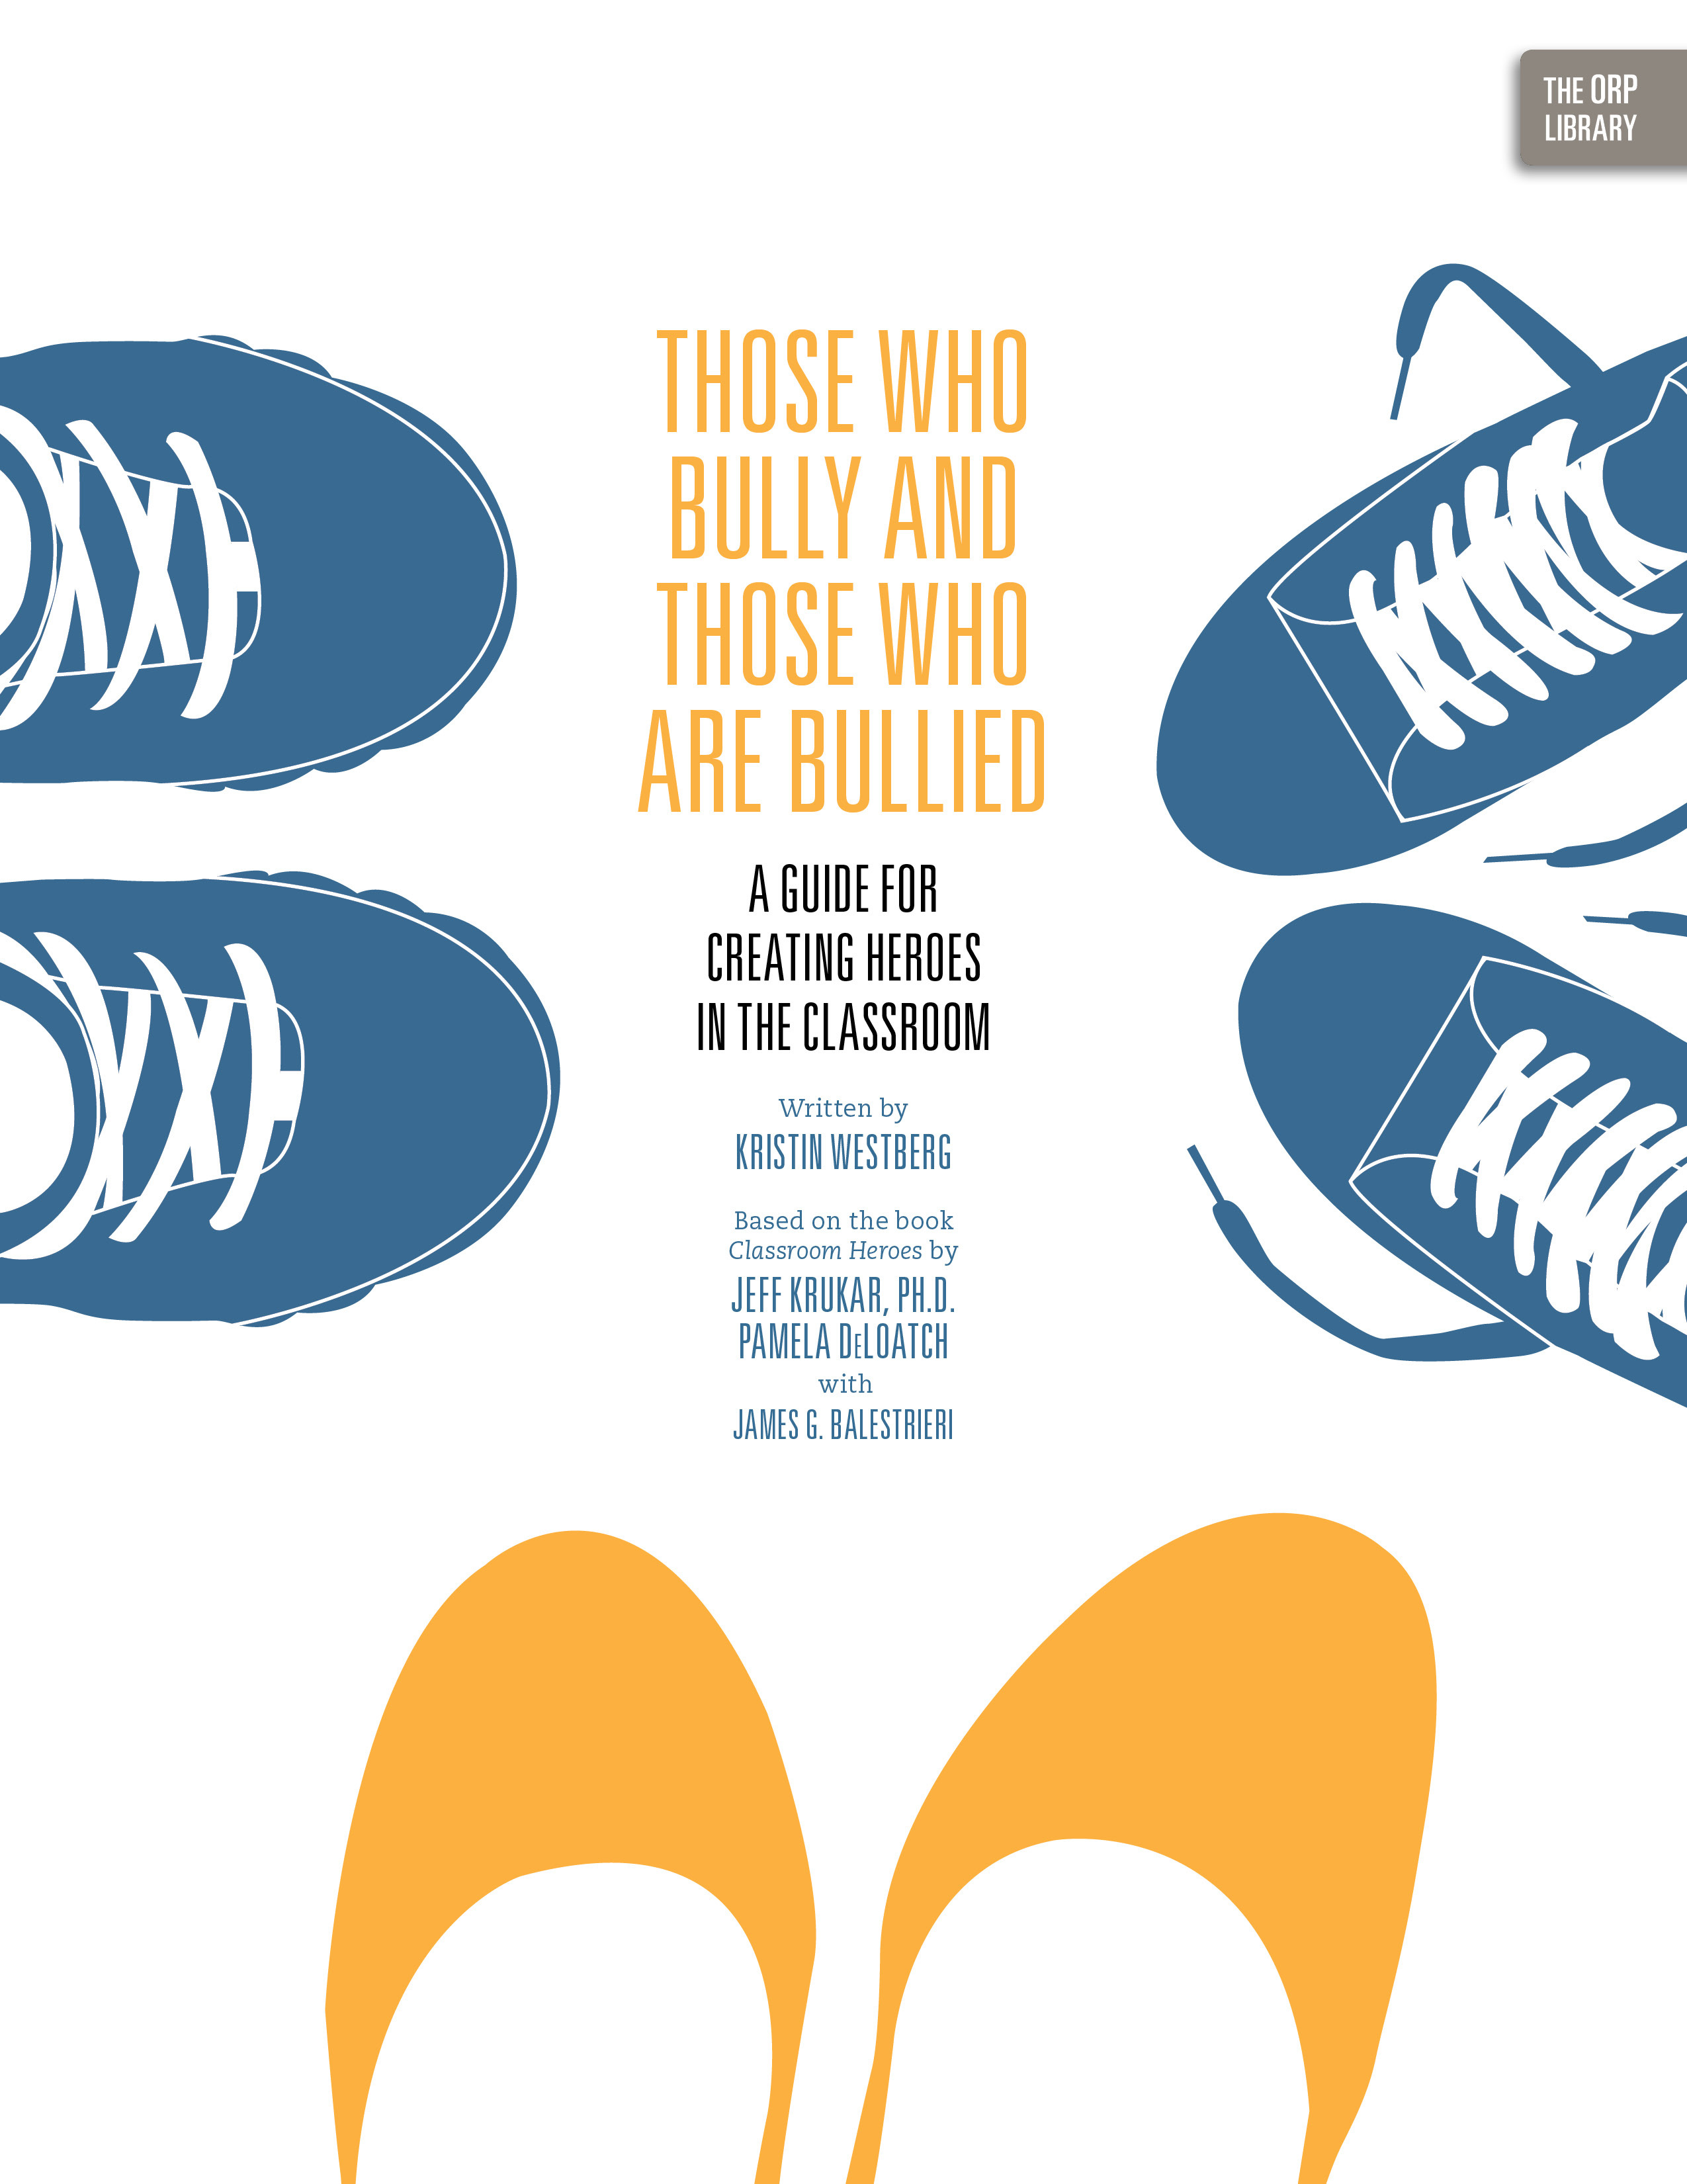 Those Who Bully and Those Who Are Bullied: A Guide for Creating Heroes in the Classroom